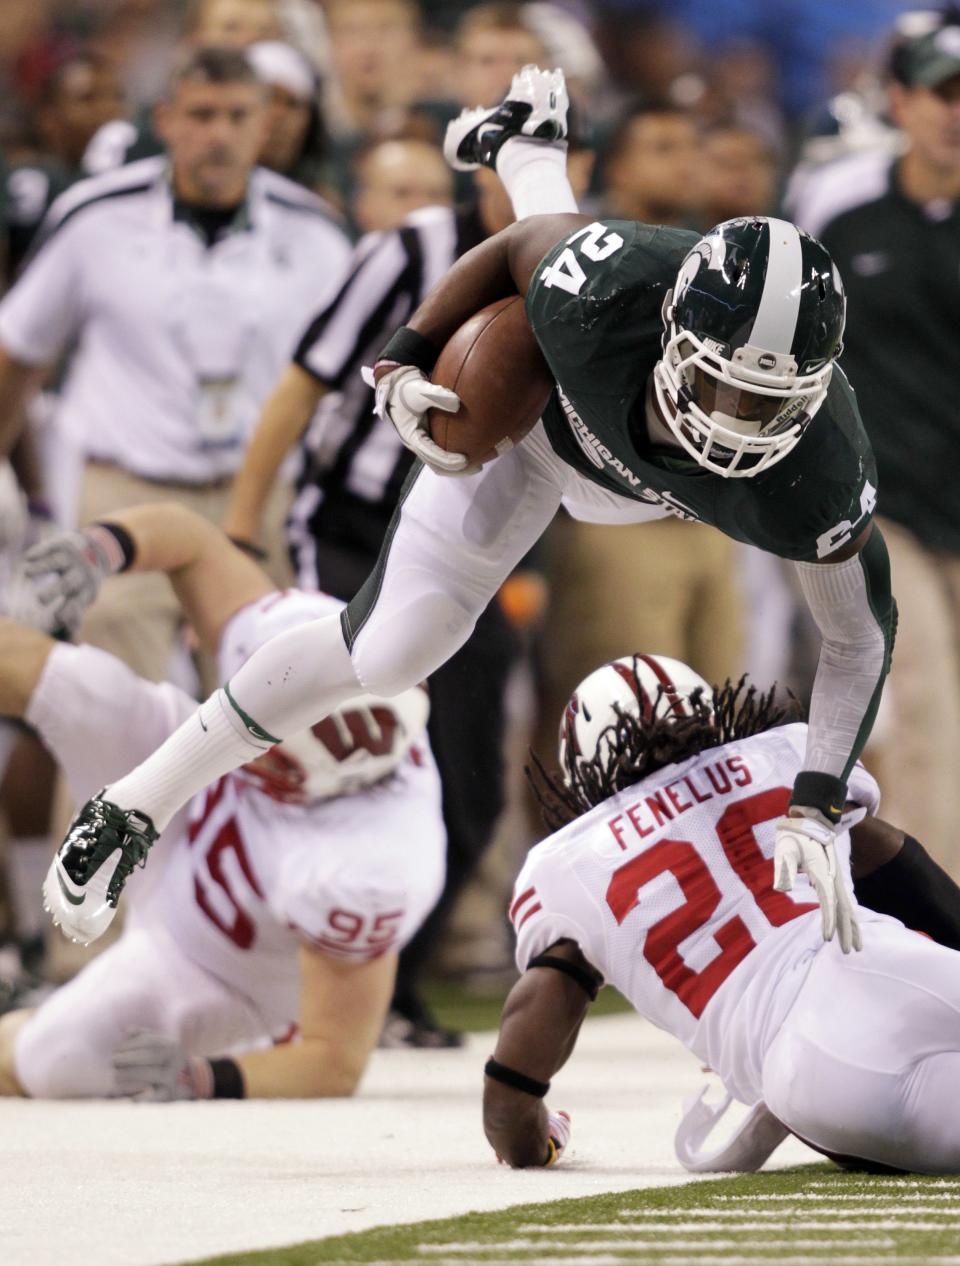 Michigan State's Le'Veon Bell is tackled by Wisconsin's Antonio Fenelus during the first half of the Big Ten conference championship NCAA college football game, Saturday, Dec. 3, 2011, in Indianapolis. (AP Photo/AJ Mast)